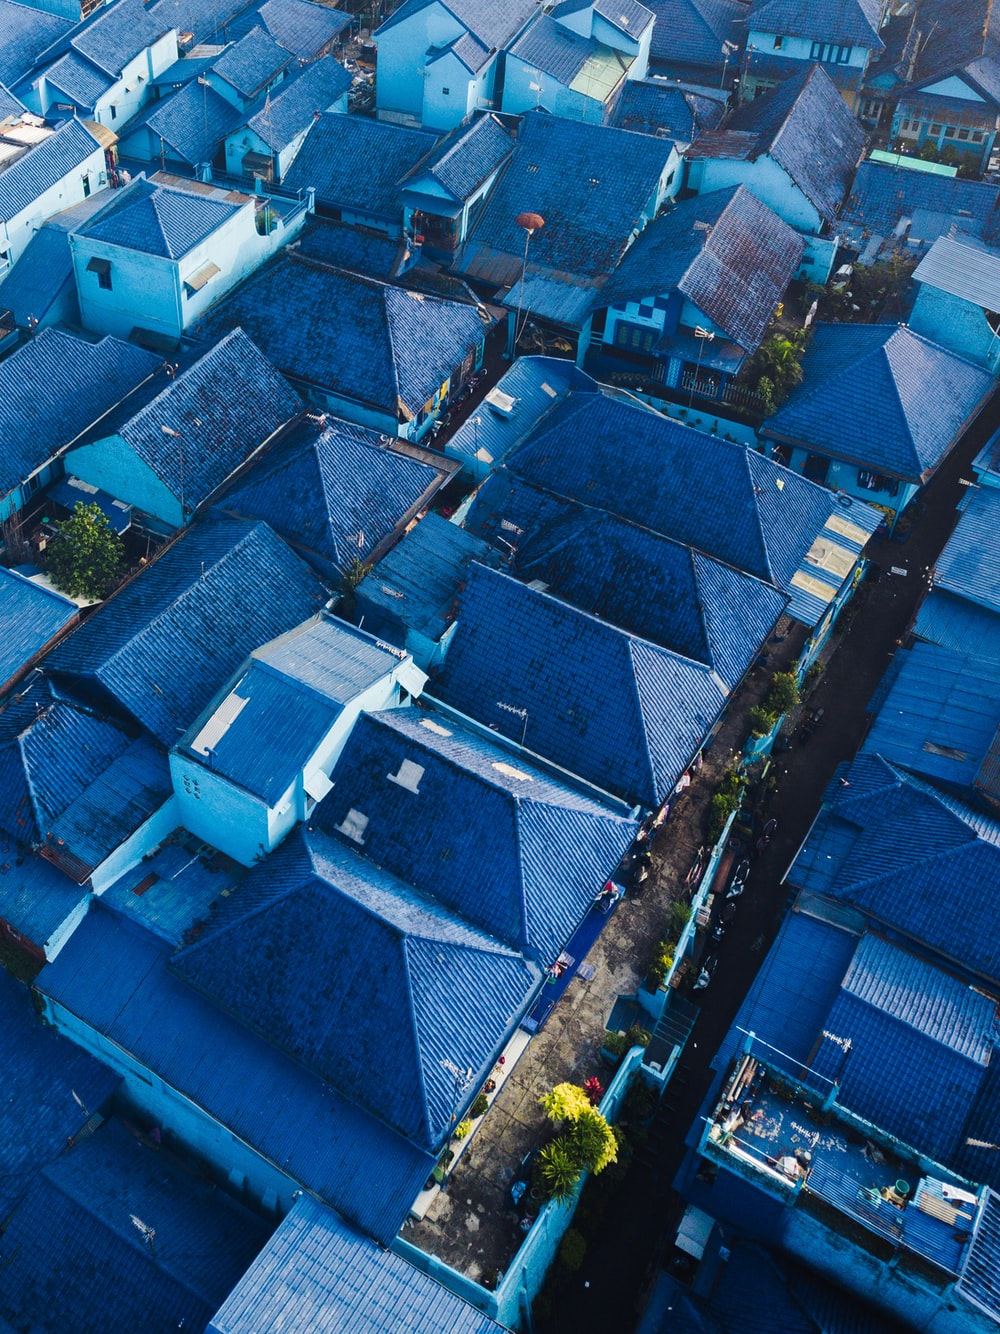 aerial photography of blue-roofed houses during daytime